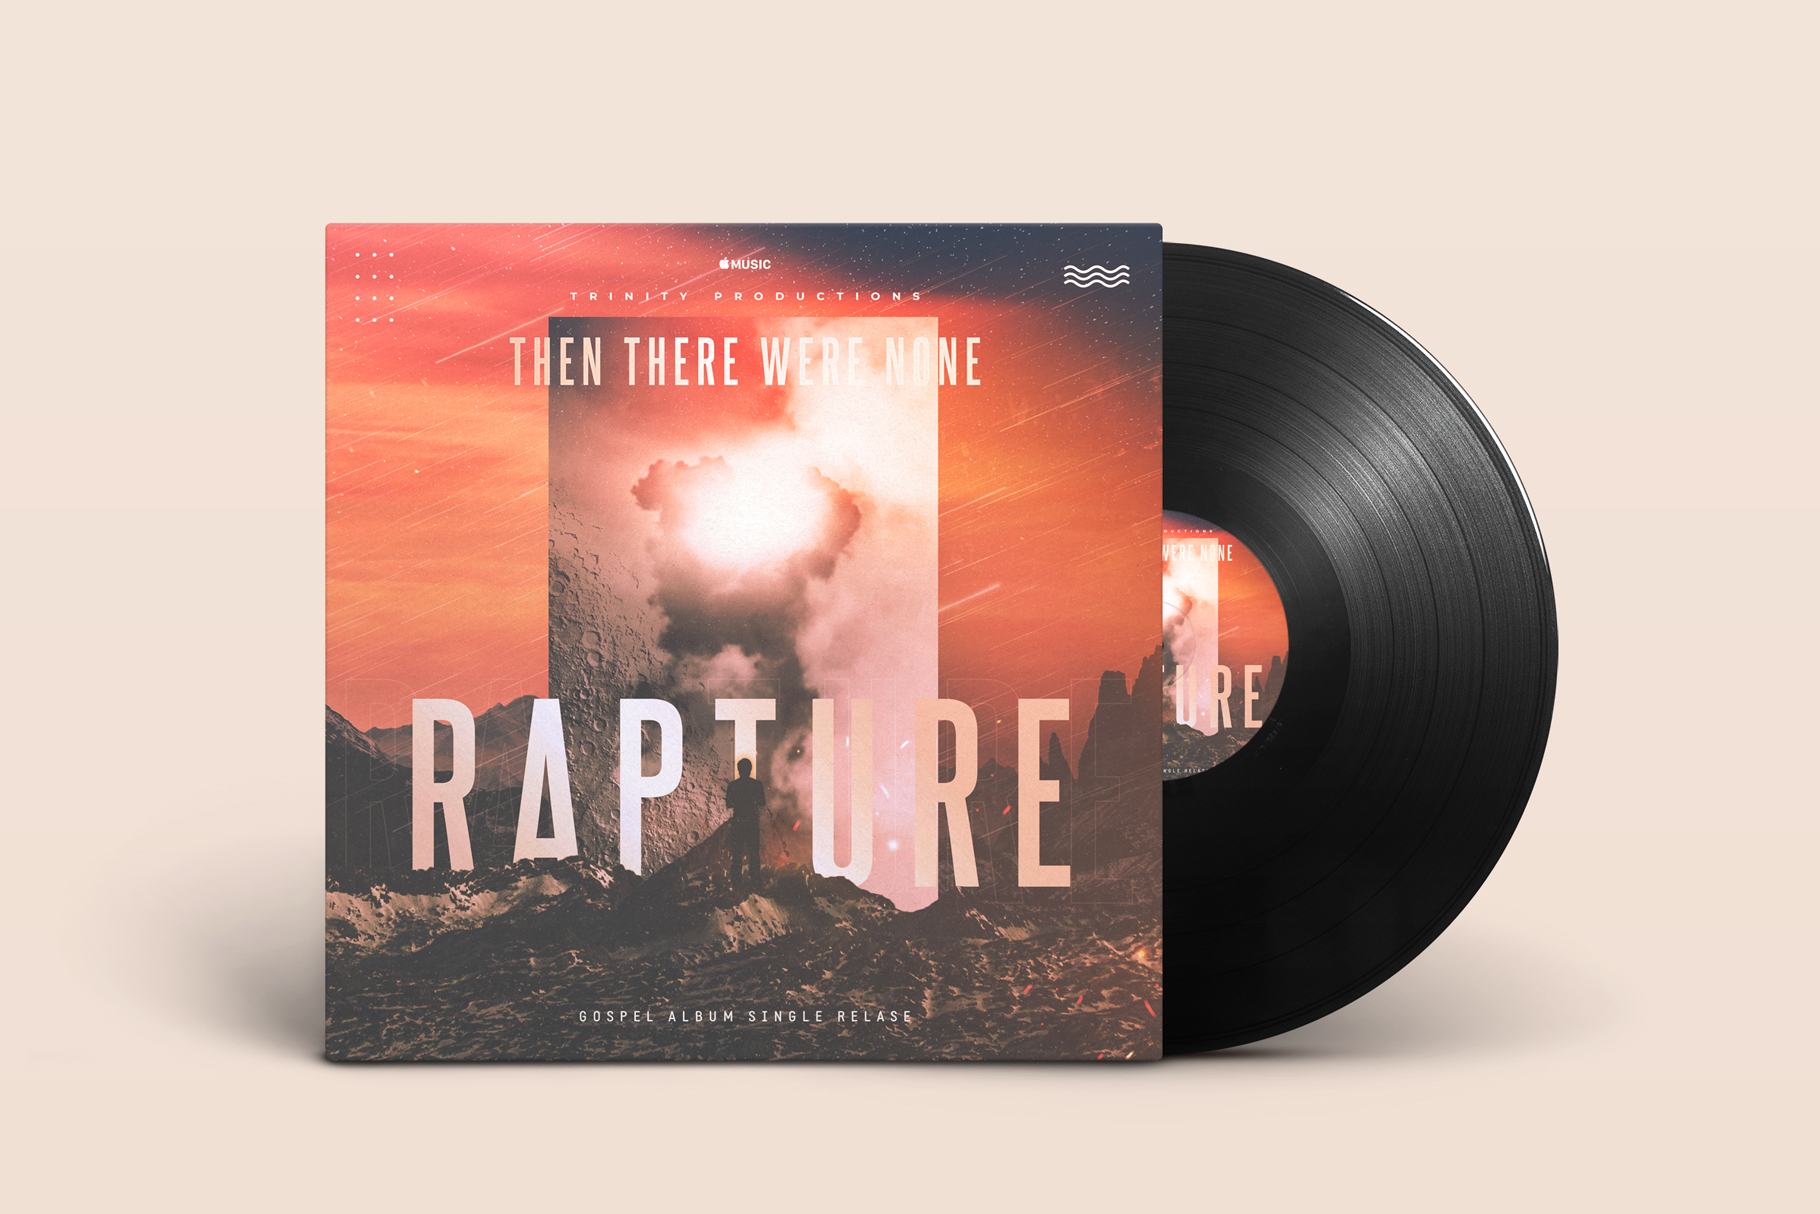 Rapture Album Cover Template example image 1